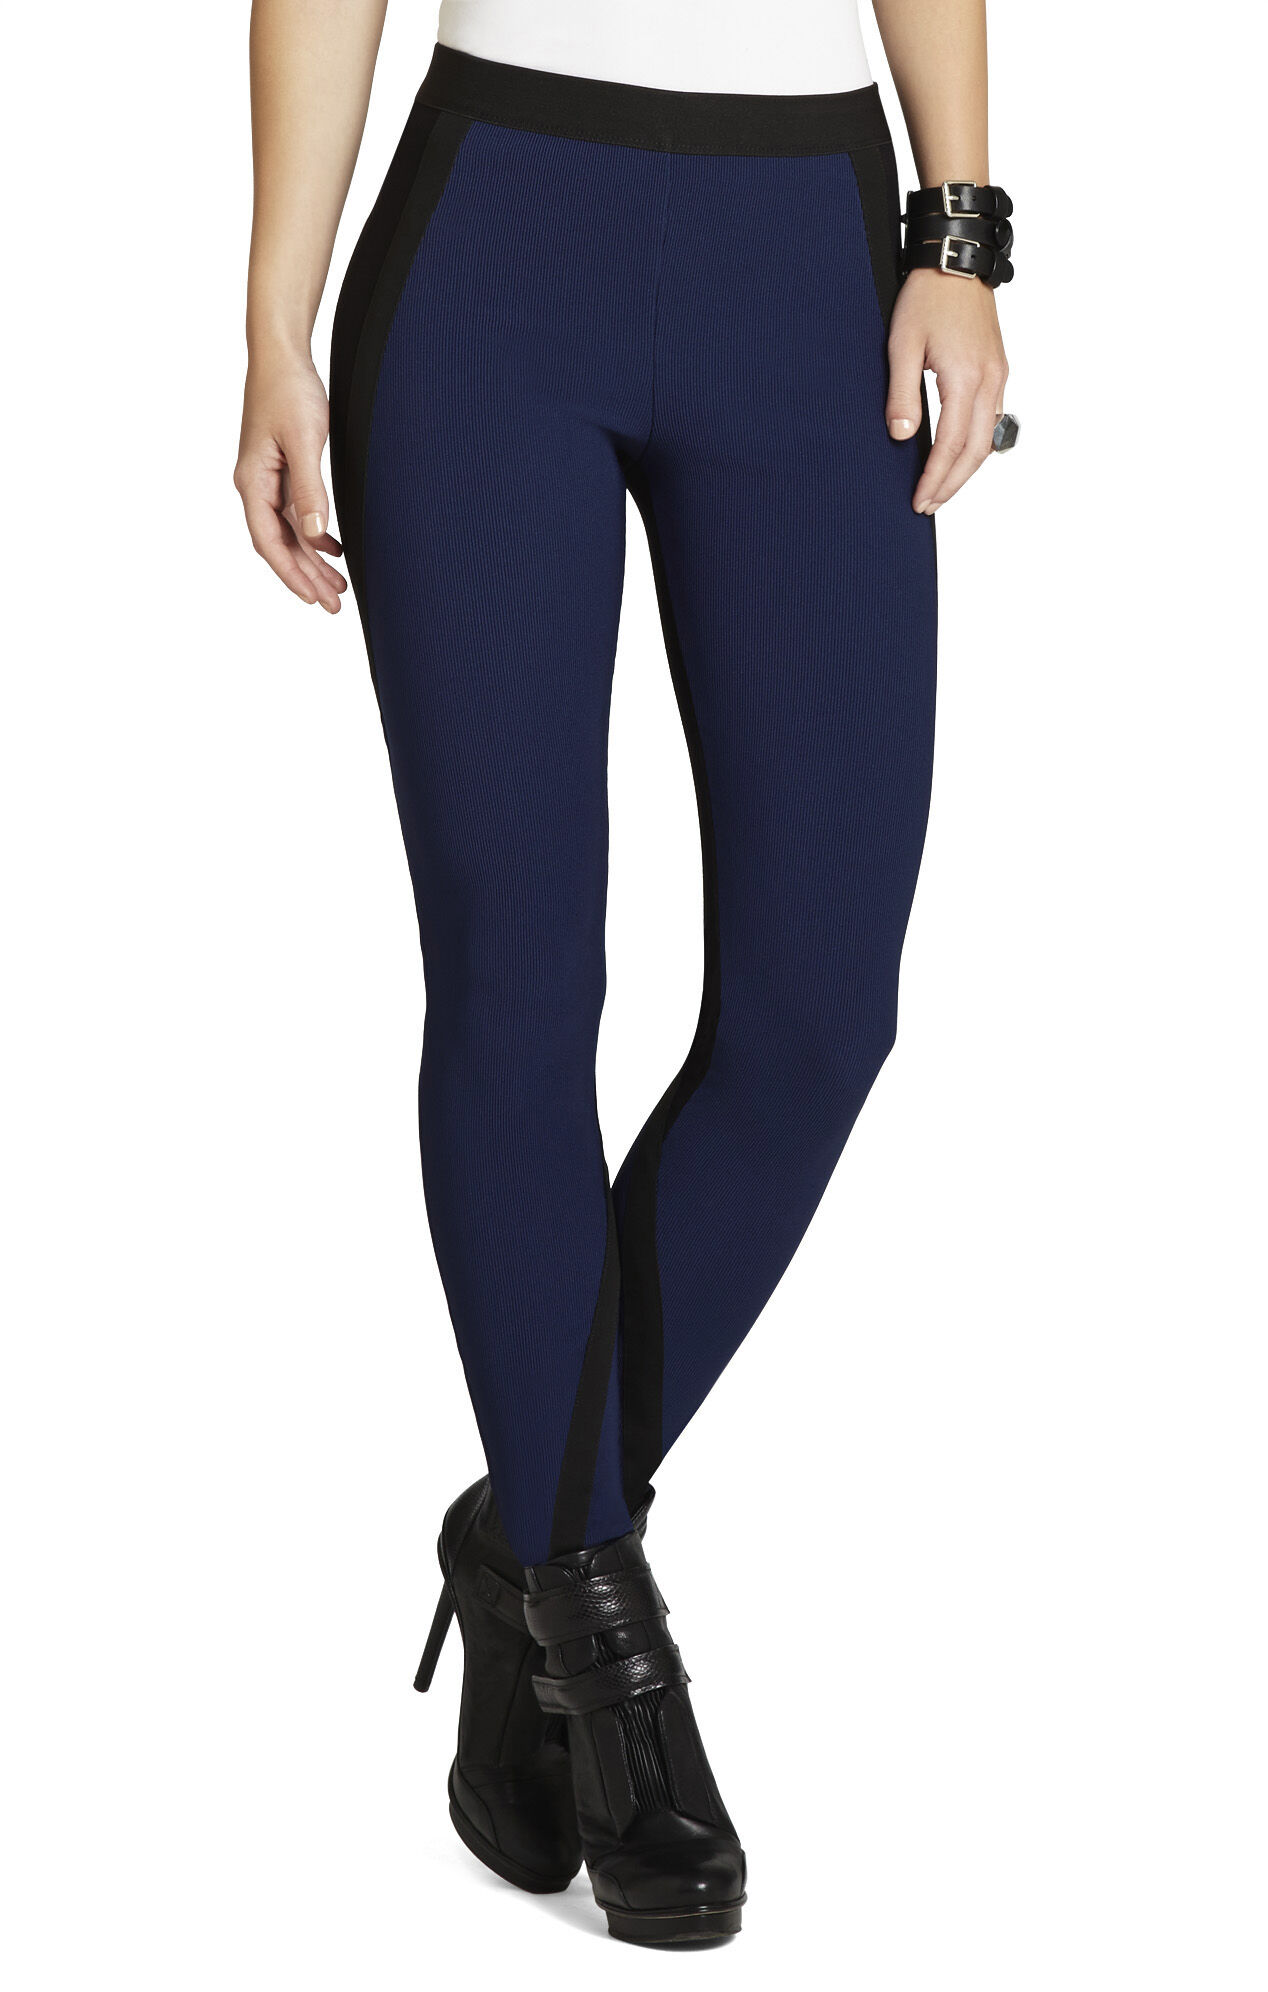 Oly Color-Blocked Legging